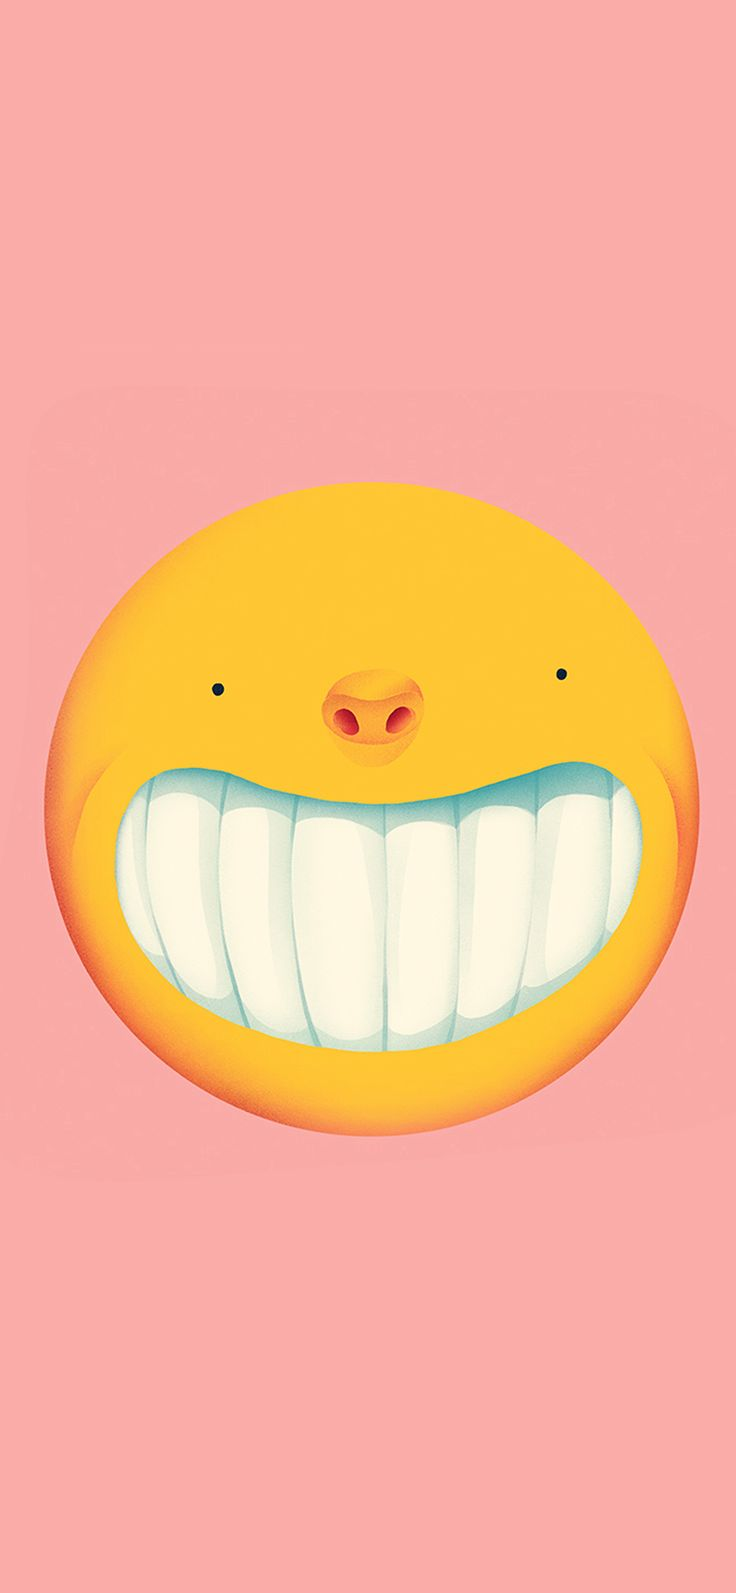 Iphone X Wallpaper Ba95 Smile Love Pink Cute Illustration Art